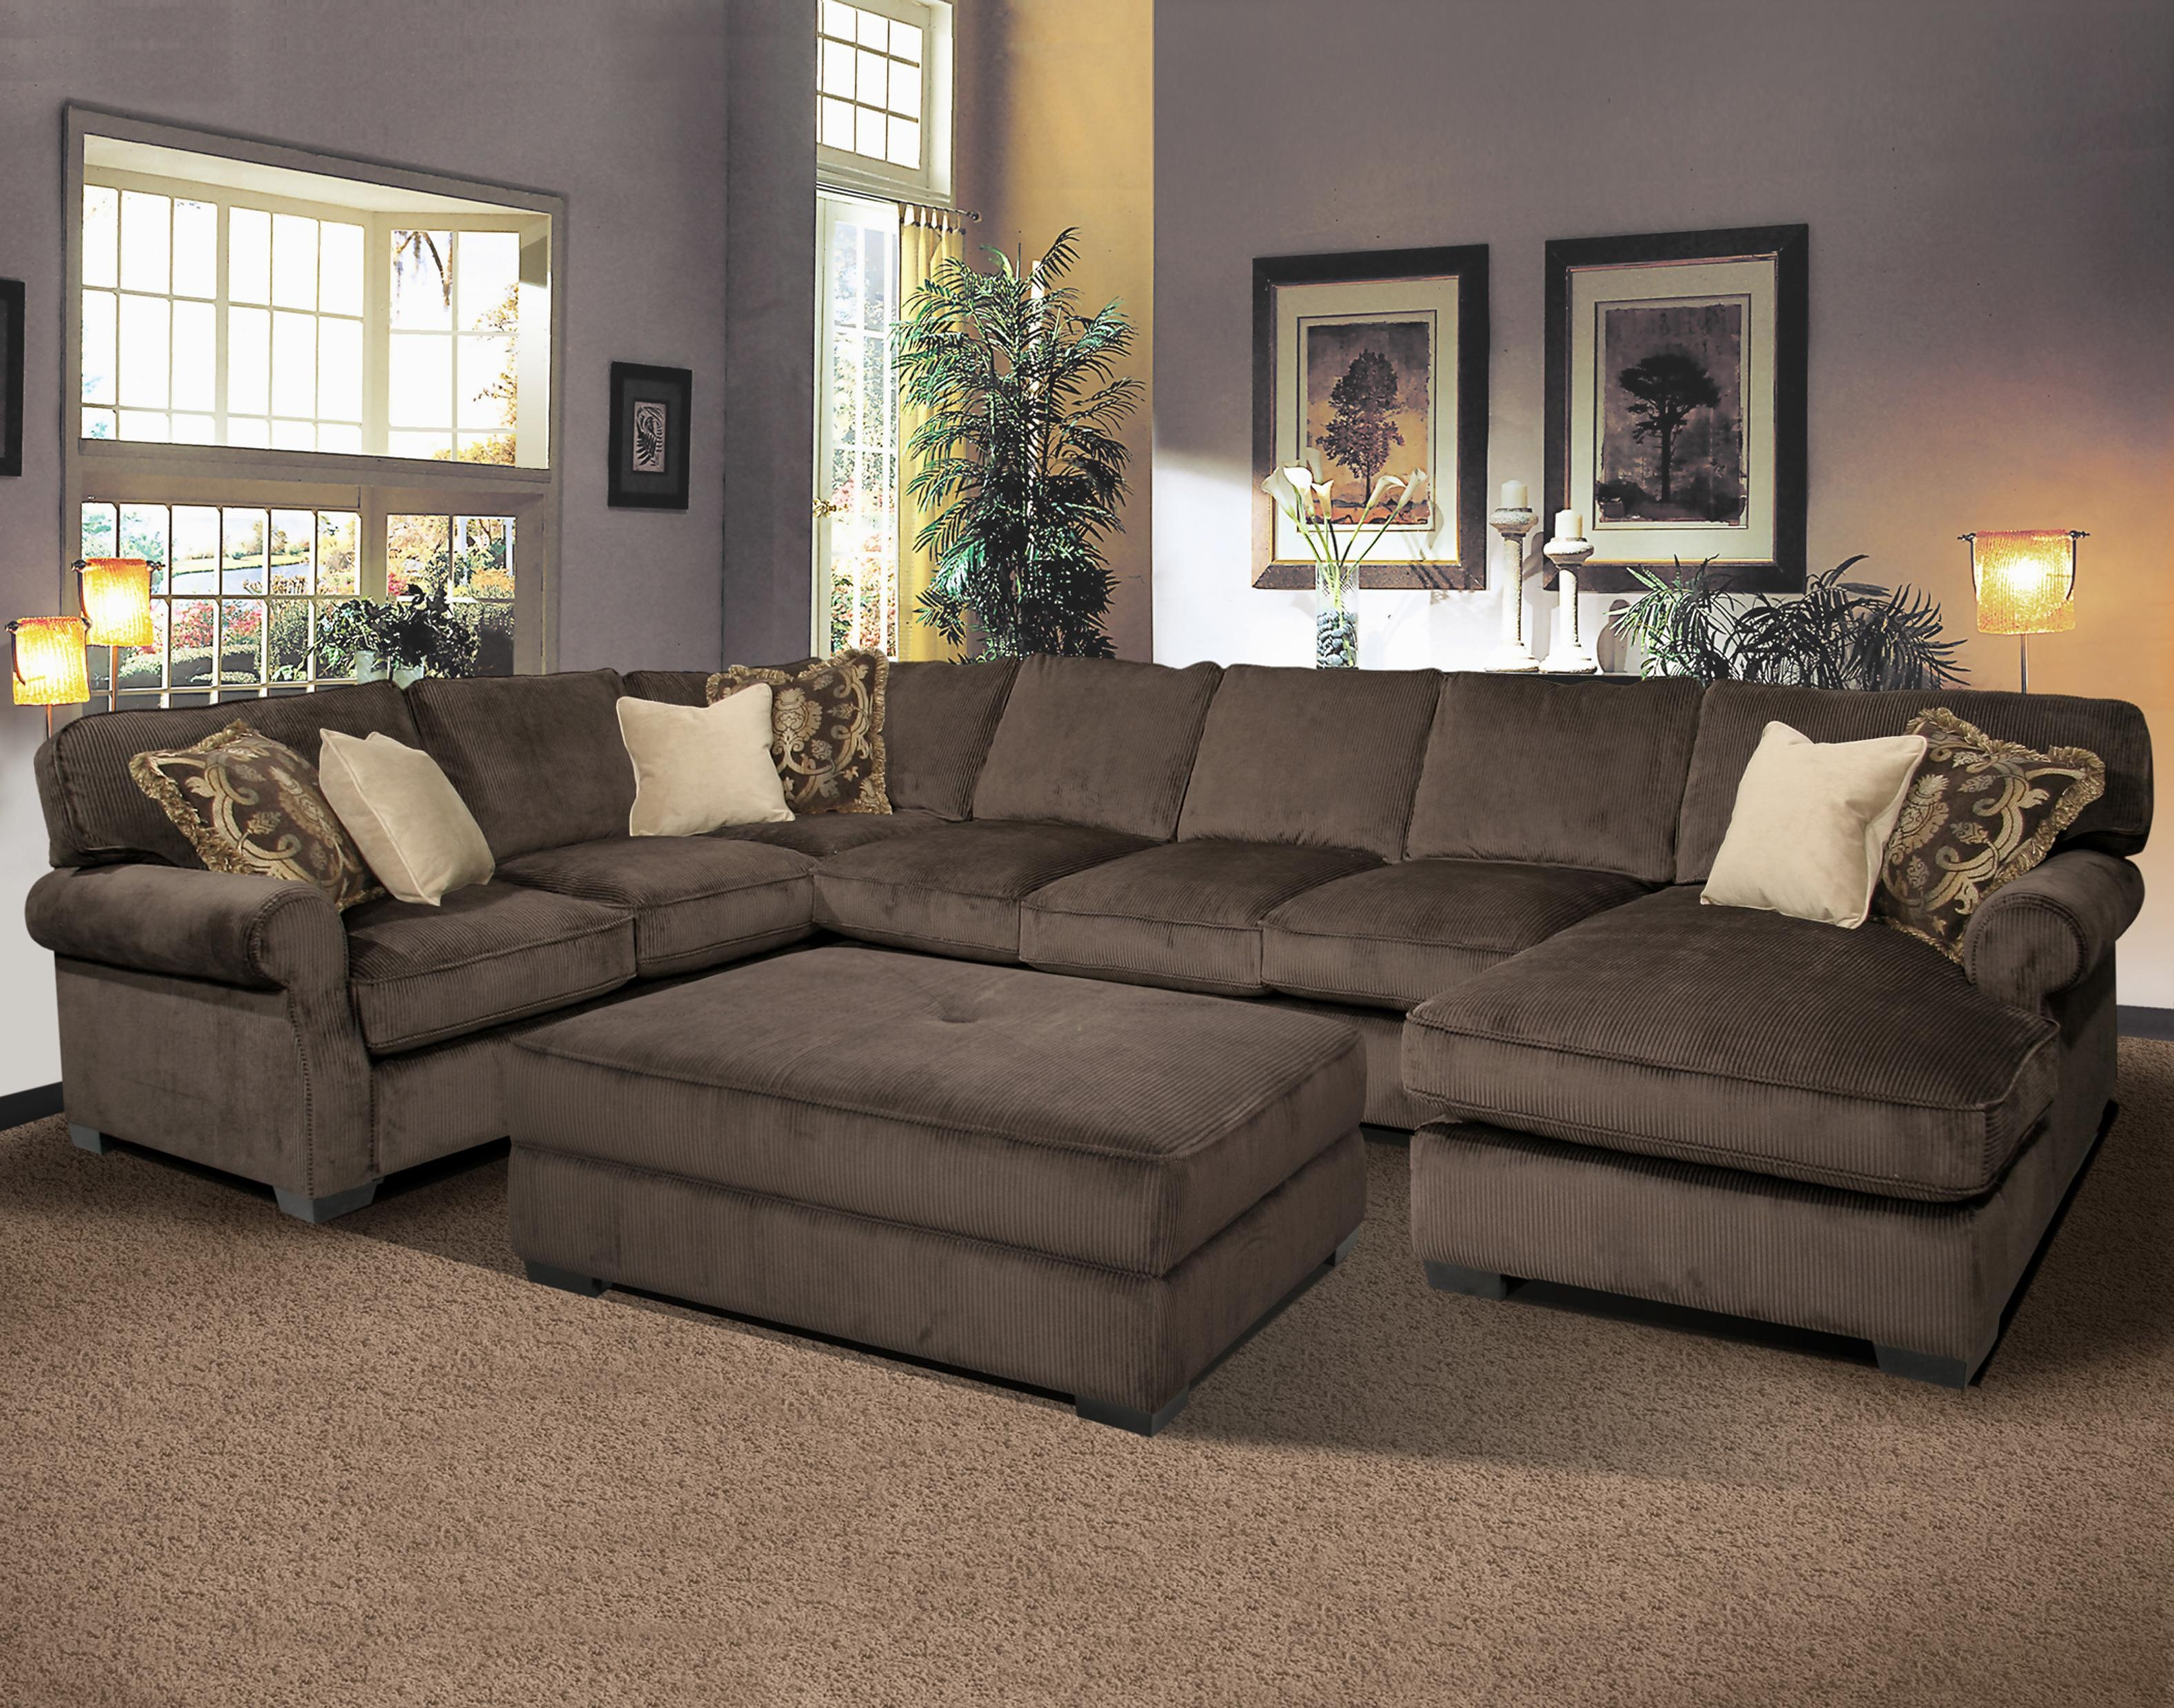 Comfortable sectional sofa the 19 most comfortable couches of all time to make sure you never Extra large living room chairs